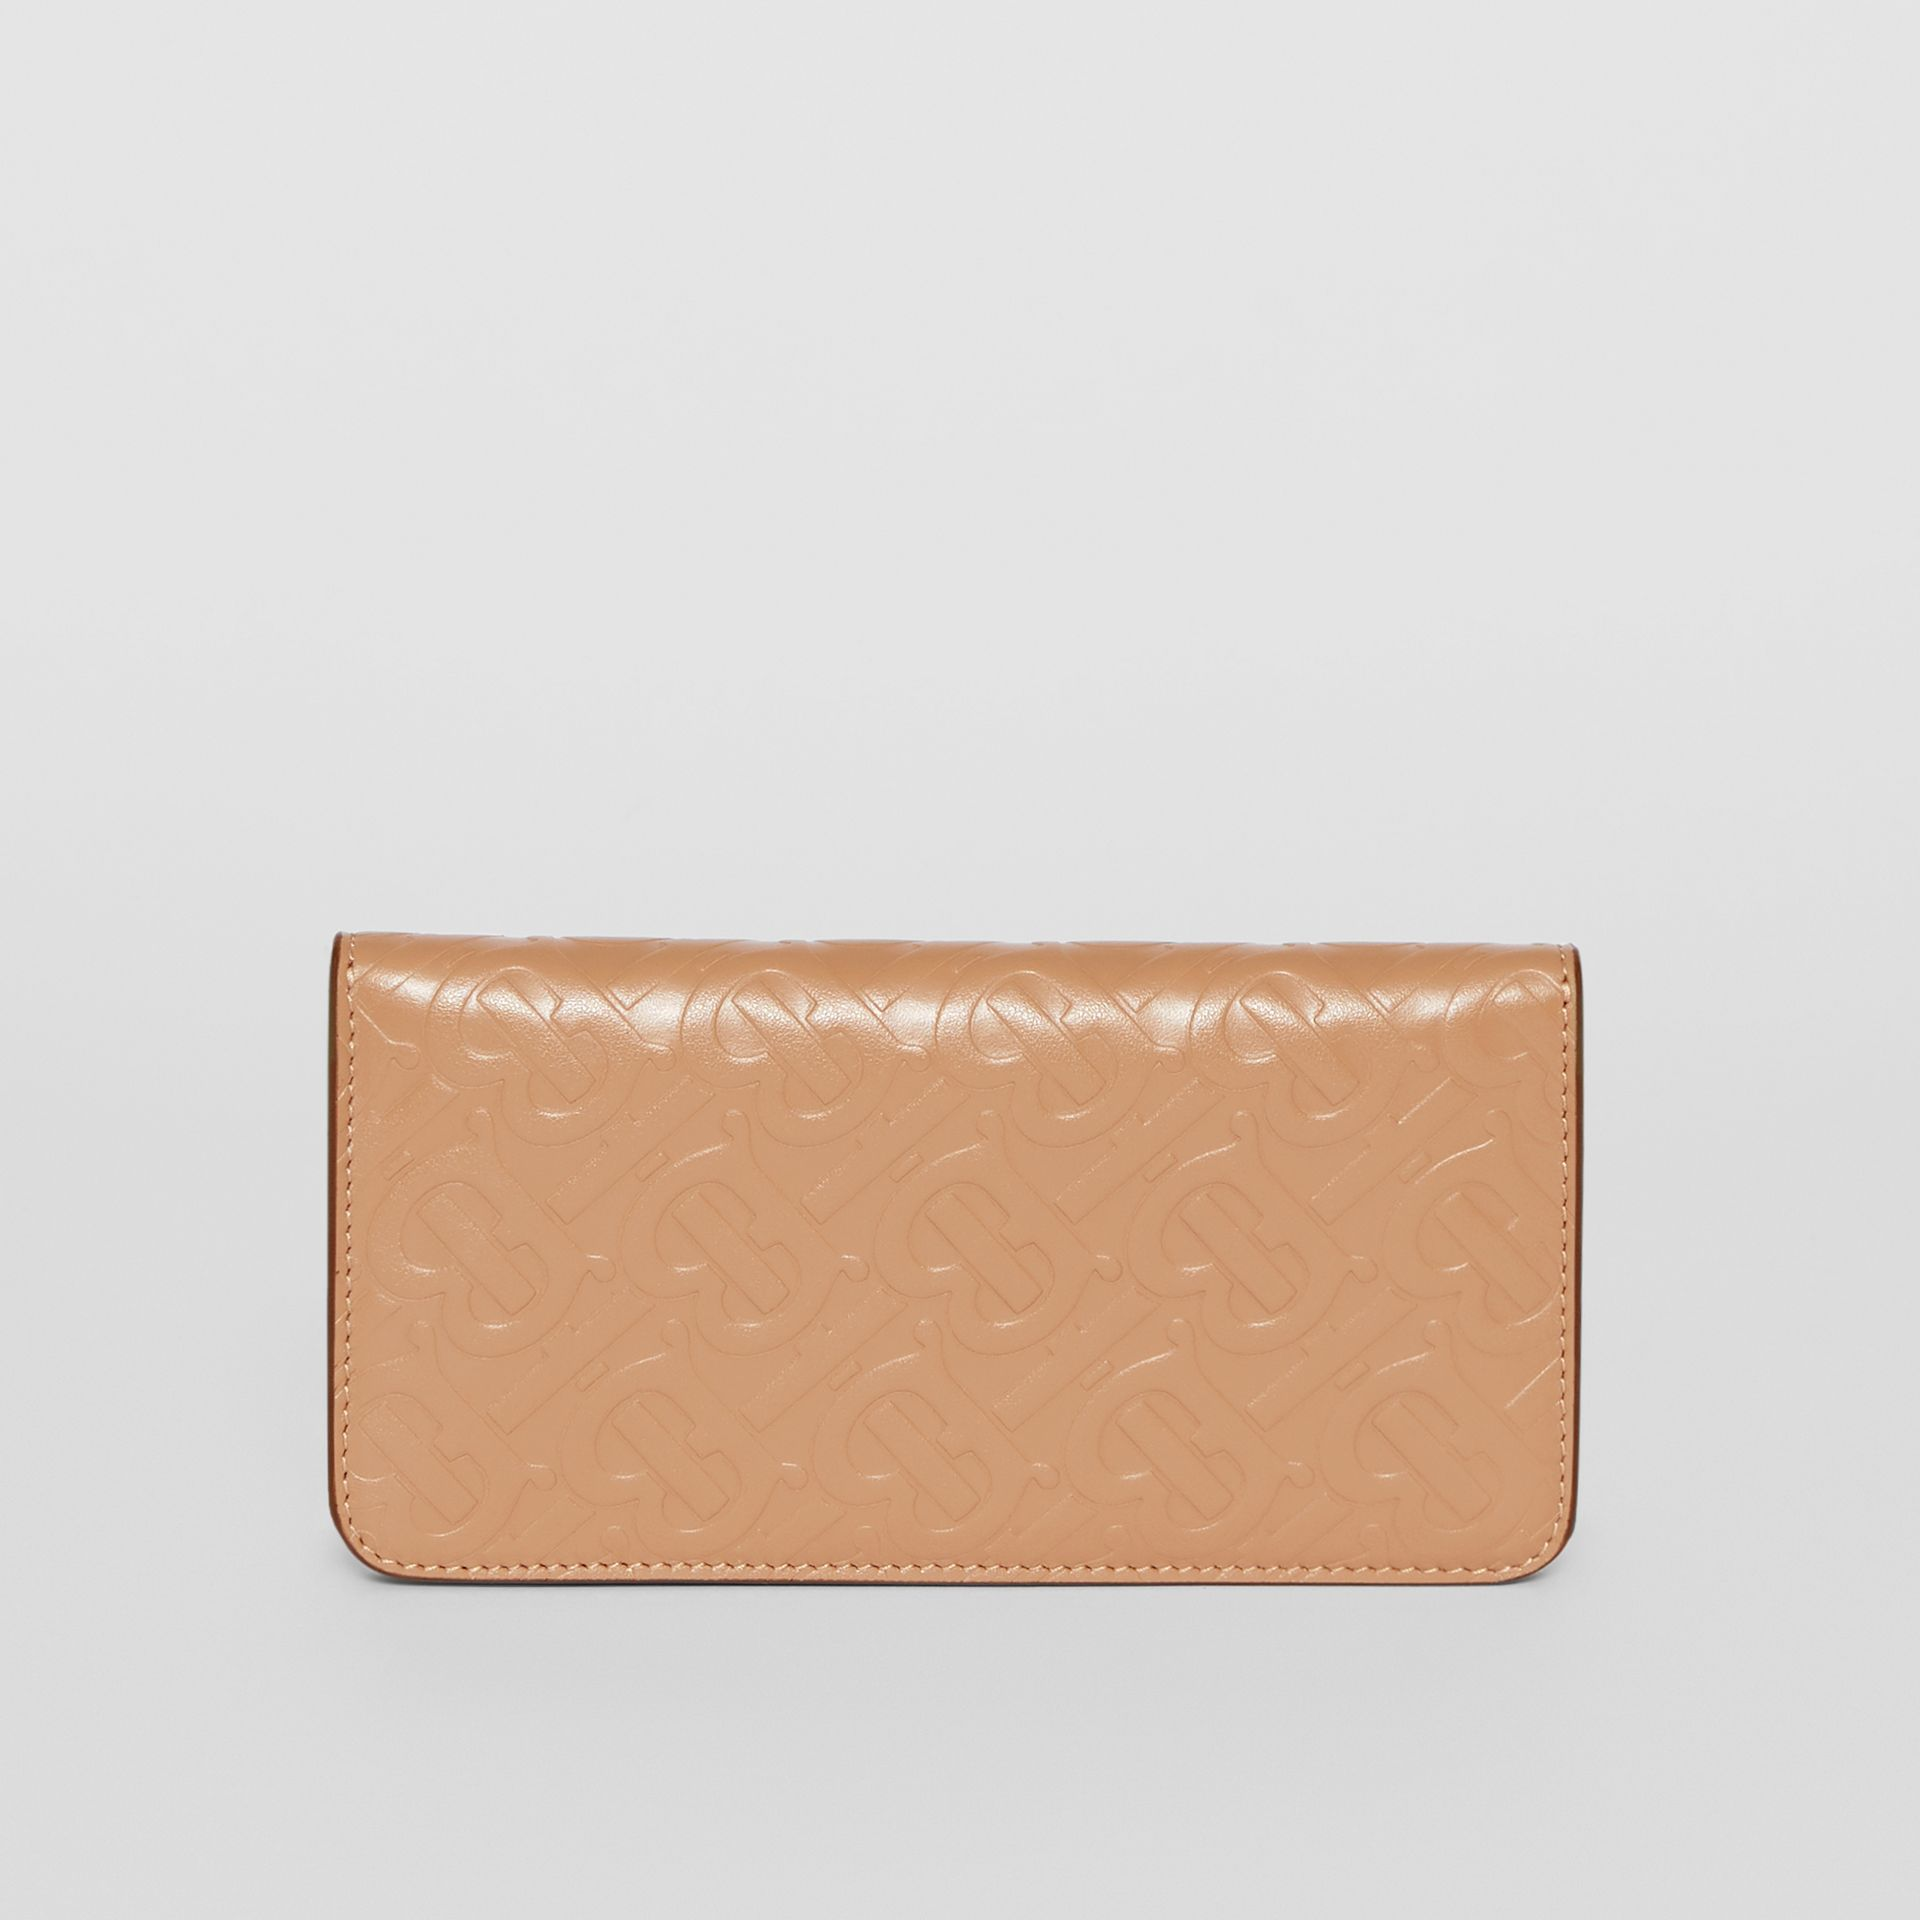 Monogram Leather Phone Wallet in Light Camel - Women | Burberry United Kingdom - gallery image 5